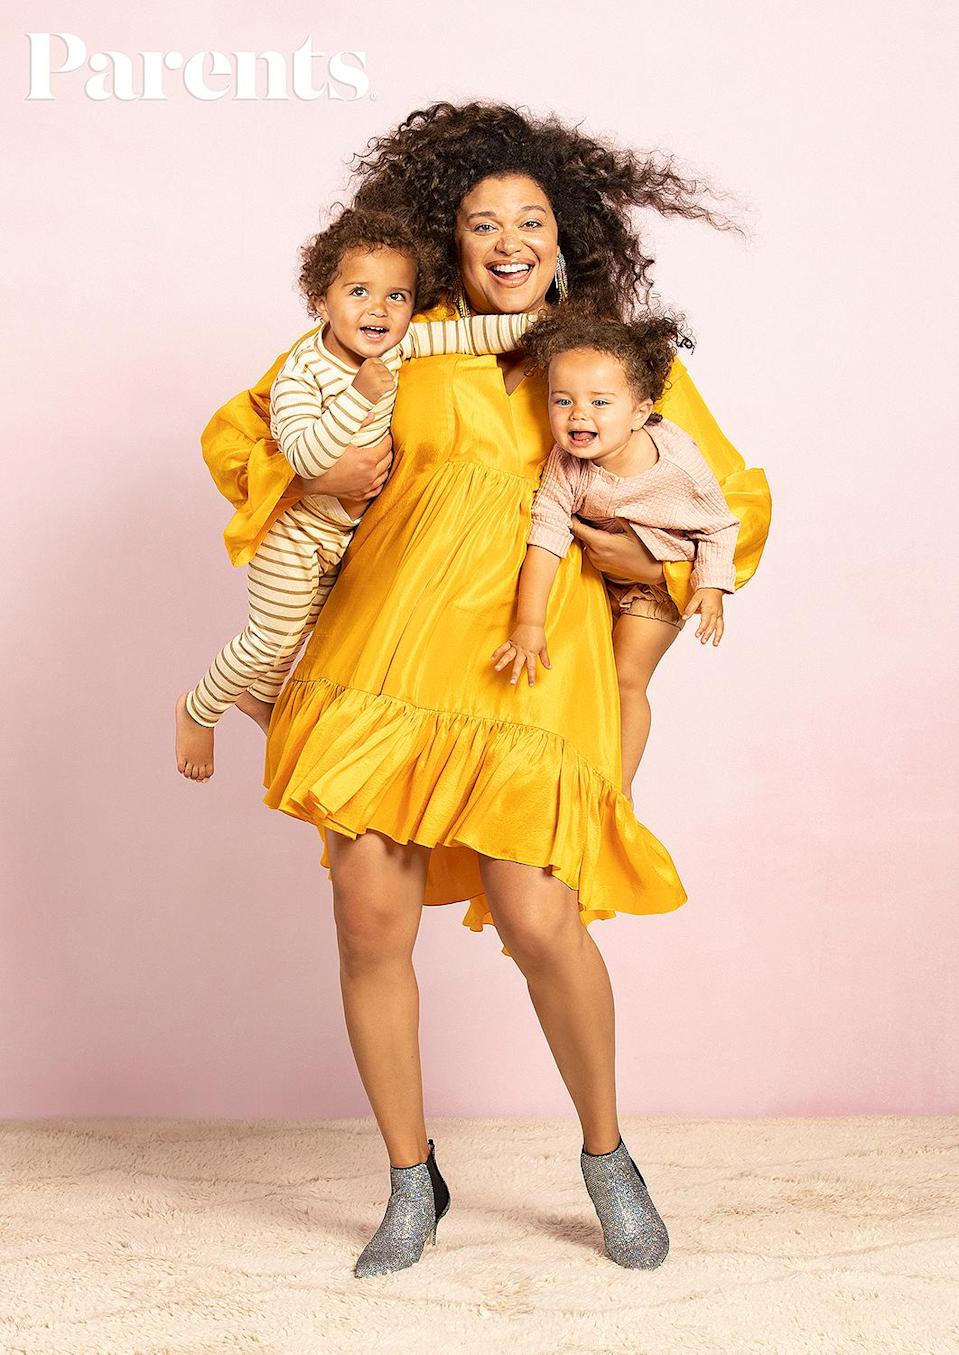 """<p>The comedian shared in her <a href=""""https://www.parents.com/parenting/celebrity-parents/michelle-buteau-on-her-5-year-fertility-struggle-i-didnt-realize-i-was-in-a-world-of-hurt/"""" rel=""""nofollow noopener"""" target=""""_blank"""" data-ylk=""""slk:Parents"""" class=""""link rapid-noclick-resp""""><em>Parents</em></a> cover story that she has had her hands full raising her twin daughters, <a href=""""https://www.instagram.com/p/BtBkZCYhuZx/"""" rel=""""nofollow noopener"""" target=""""_blank"""" data-ylk=""""slk:Hazel and Otis,"""" class=""""link rapid-noclick-resp"""">Hazel and Otis,</a> without outside help.</p> <p>""""I didn't know if I could do it,"""" she told friend <a href=""""https://people.com/tag/wanda-sykes/"""" rel=""""nofollow noopener"""" target=""""_blank"""" data-ylk=""""slk:Wanda Sykes"""" class=""""link rapid-noclick-resp"""">Wanda Sykes</a>, also a mom to twins, for <a href=""""https://www.parents.com/parenting/celebrity-parents/michelle-buteau-on-her-5-year-fertility-struggle-i-didnt-realize-i-was-in-a-world-of-hurt/"""" rel=""""nofollow noopener"""" target=""""_blank"""" data-ylk=""""slk:the December issue"""" class=""""link rapid-noclick-resp"""">the December issue</a>. </p> <p>""""Up until [the quarantine] I had always had help with the babies. So being alone with them, it felt like I was snorkeling for the first time and didn't know how to breathe yet,"""" she said. """"I felt bad for being impatient. I don't want to be that parent yelling all the time.""""</p> <p>Buteau, whose Netflix comedy special <em>Welcome to Buteaupia </em>is streaming now, recalled that she """"quickly learned that it's all about taking five in the bathroom, recollecting your thoughts, putting on the TV, giving them a crayon"""" to stay sane. In the end, the mom of two realized that she """"can do this.""""</p> <p>""""Up until the pandemic, we had an amazing nanny, and I had friendships. Now that we're really broken-in as a family, I feel like, 'Oh wow, I got this,' """" said Buteau.</p>"""